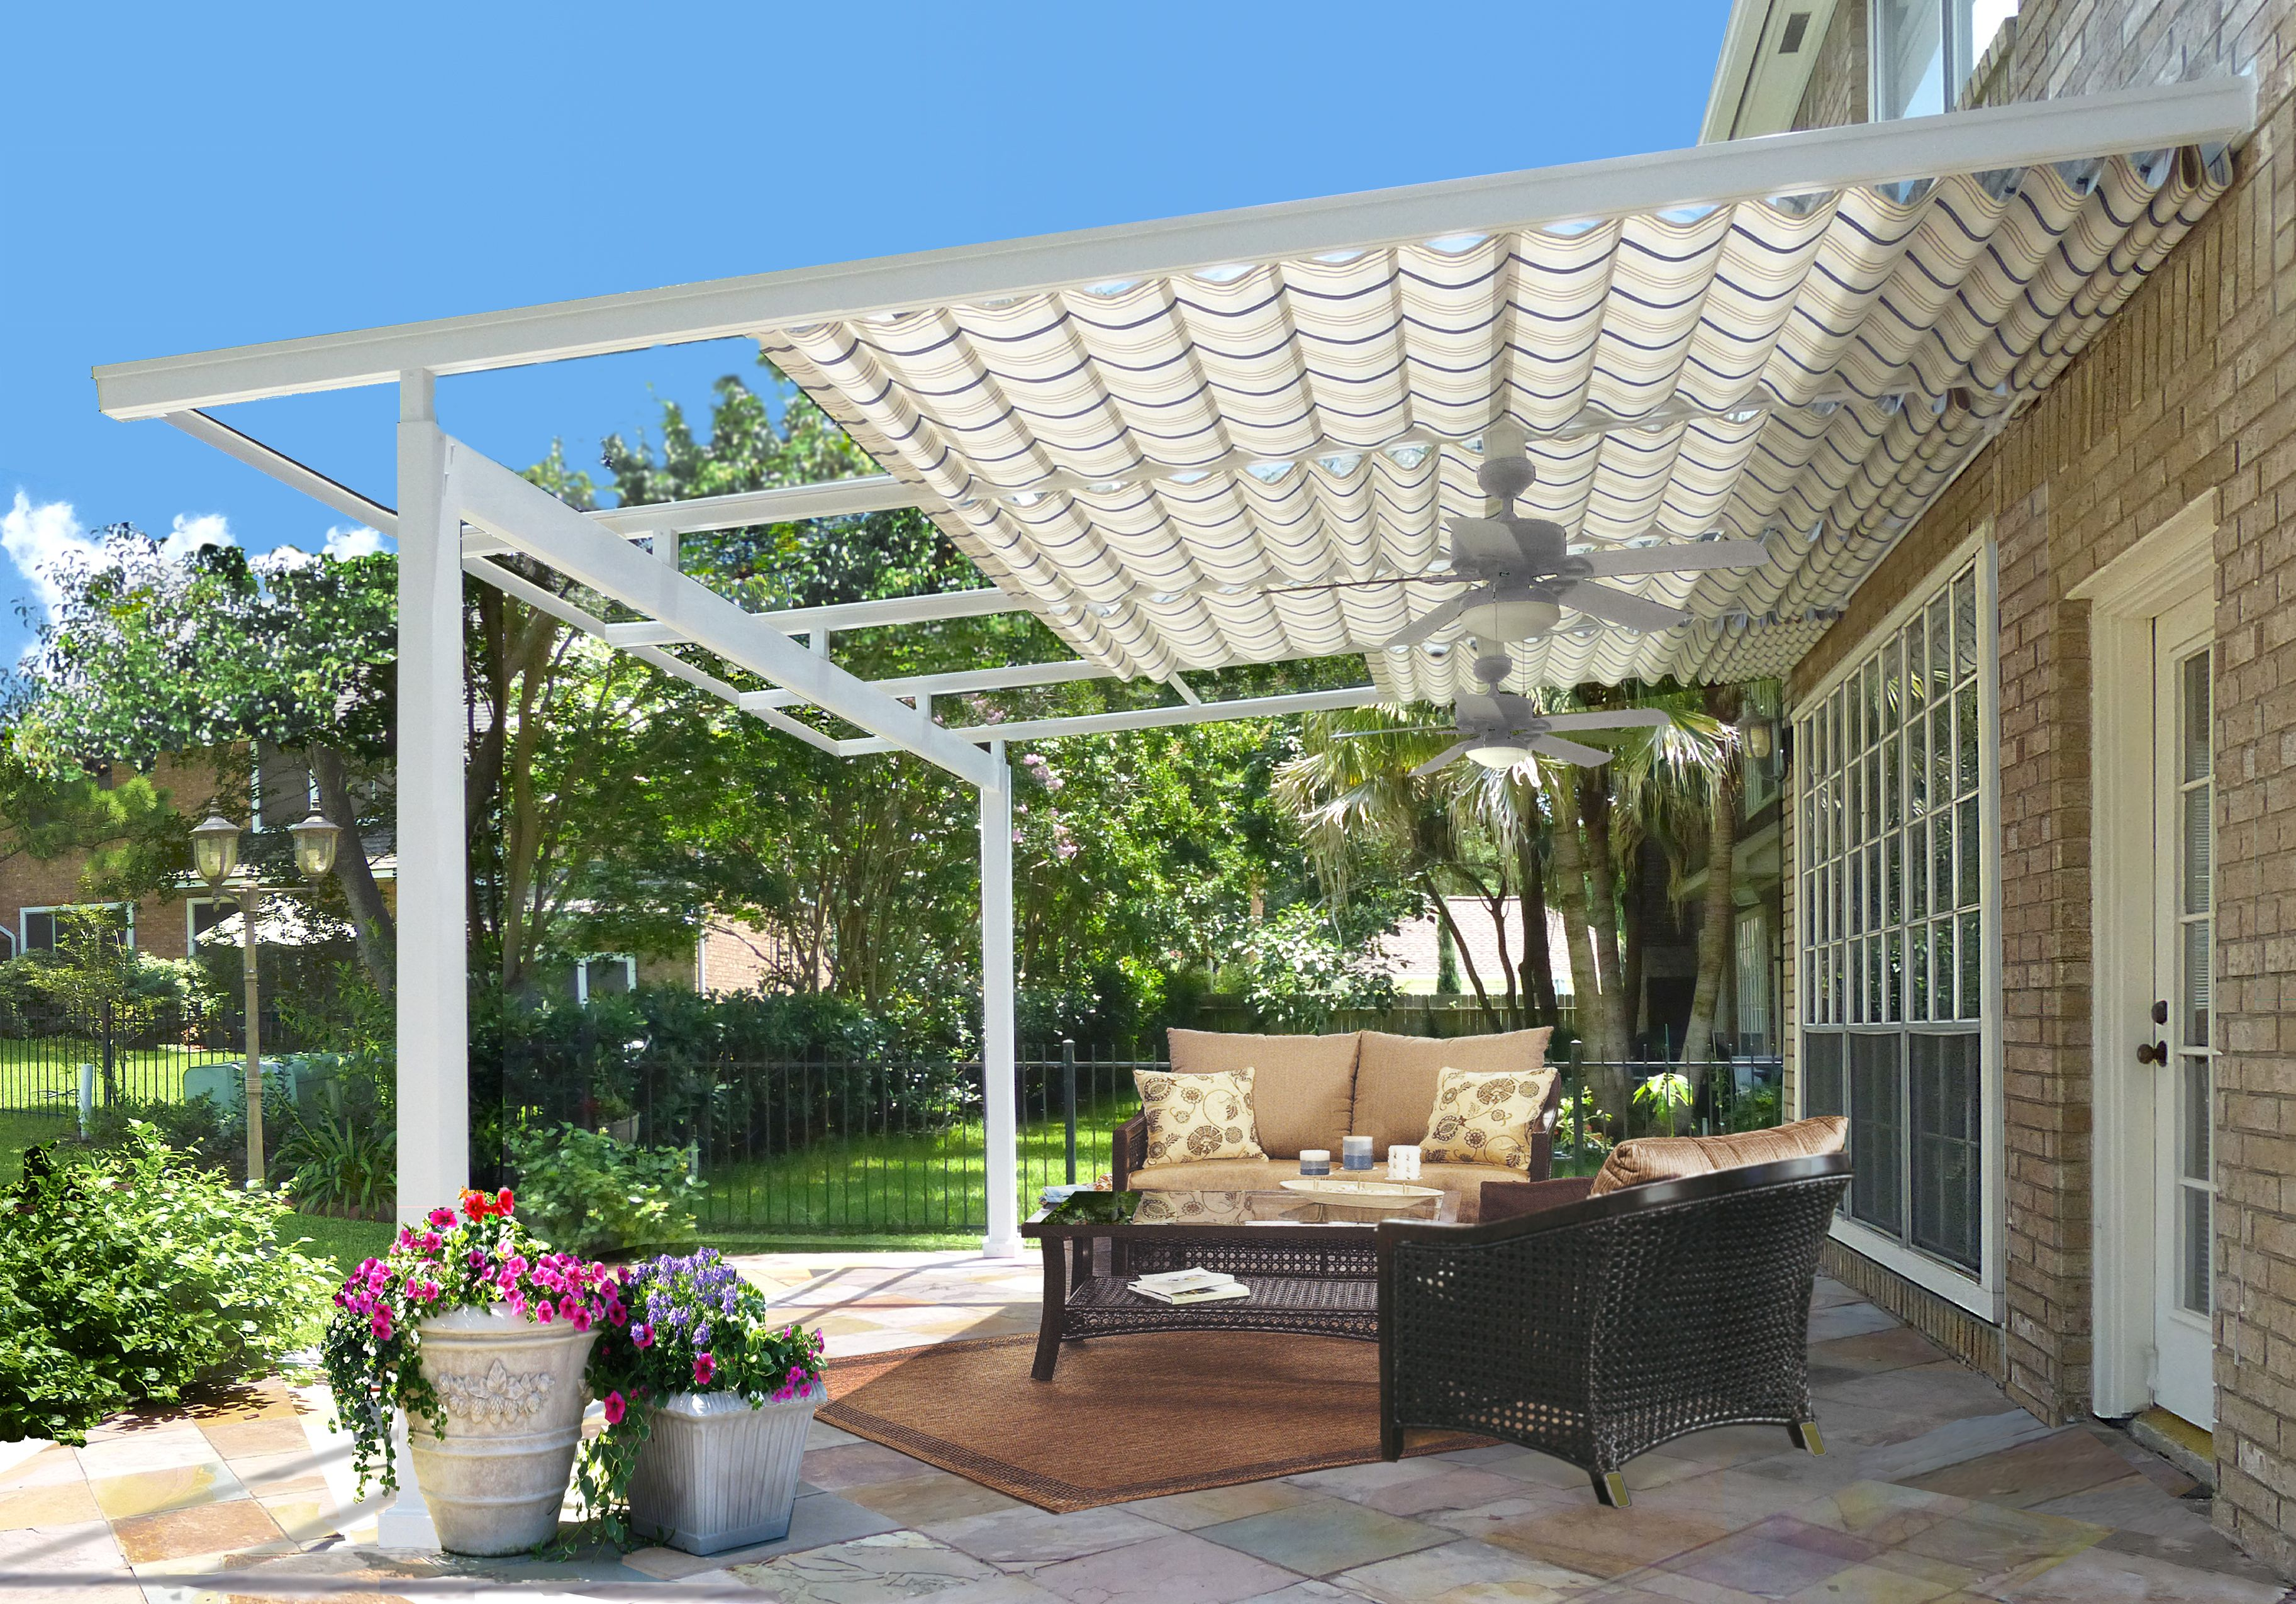 Superbe Glass Patio Covers And Modern Style Garden Glass Patios C Home Learn More  Photo Gallery